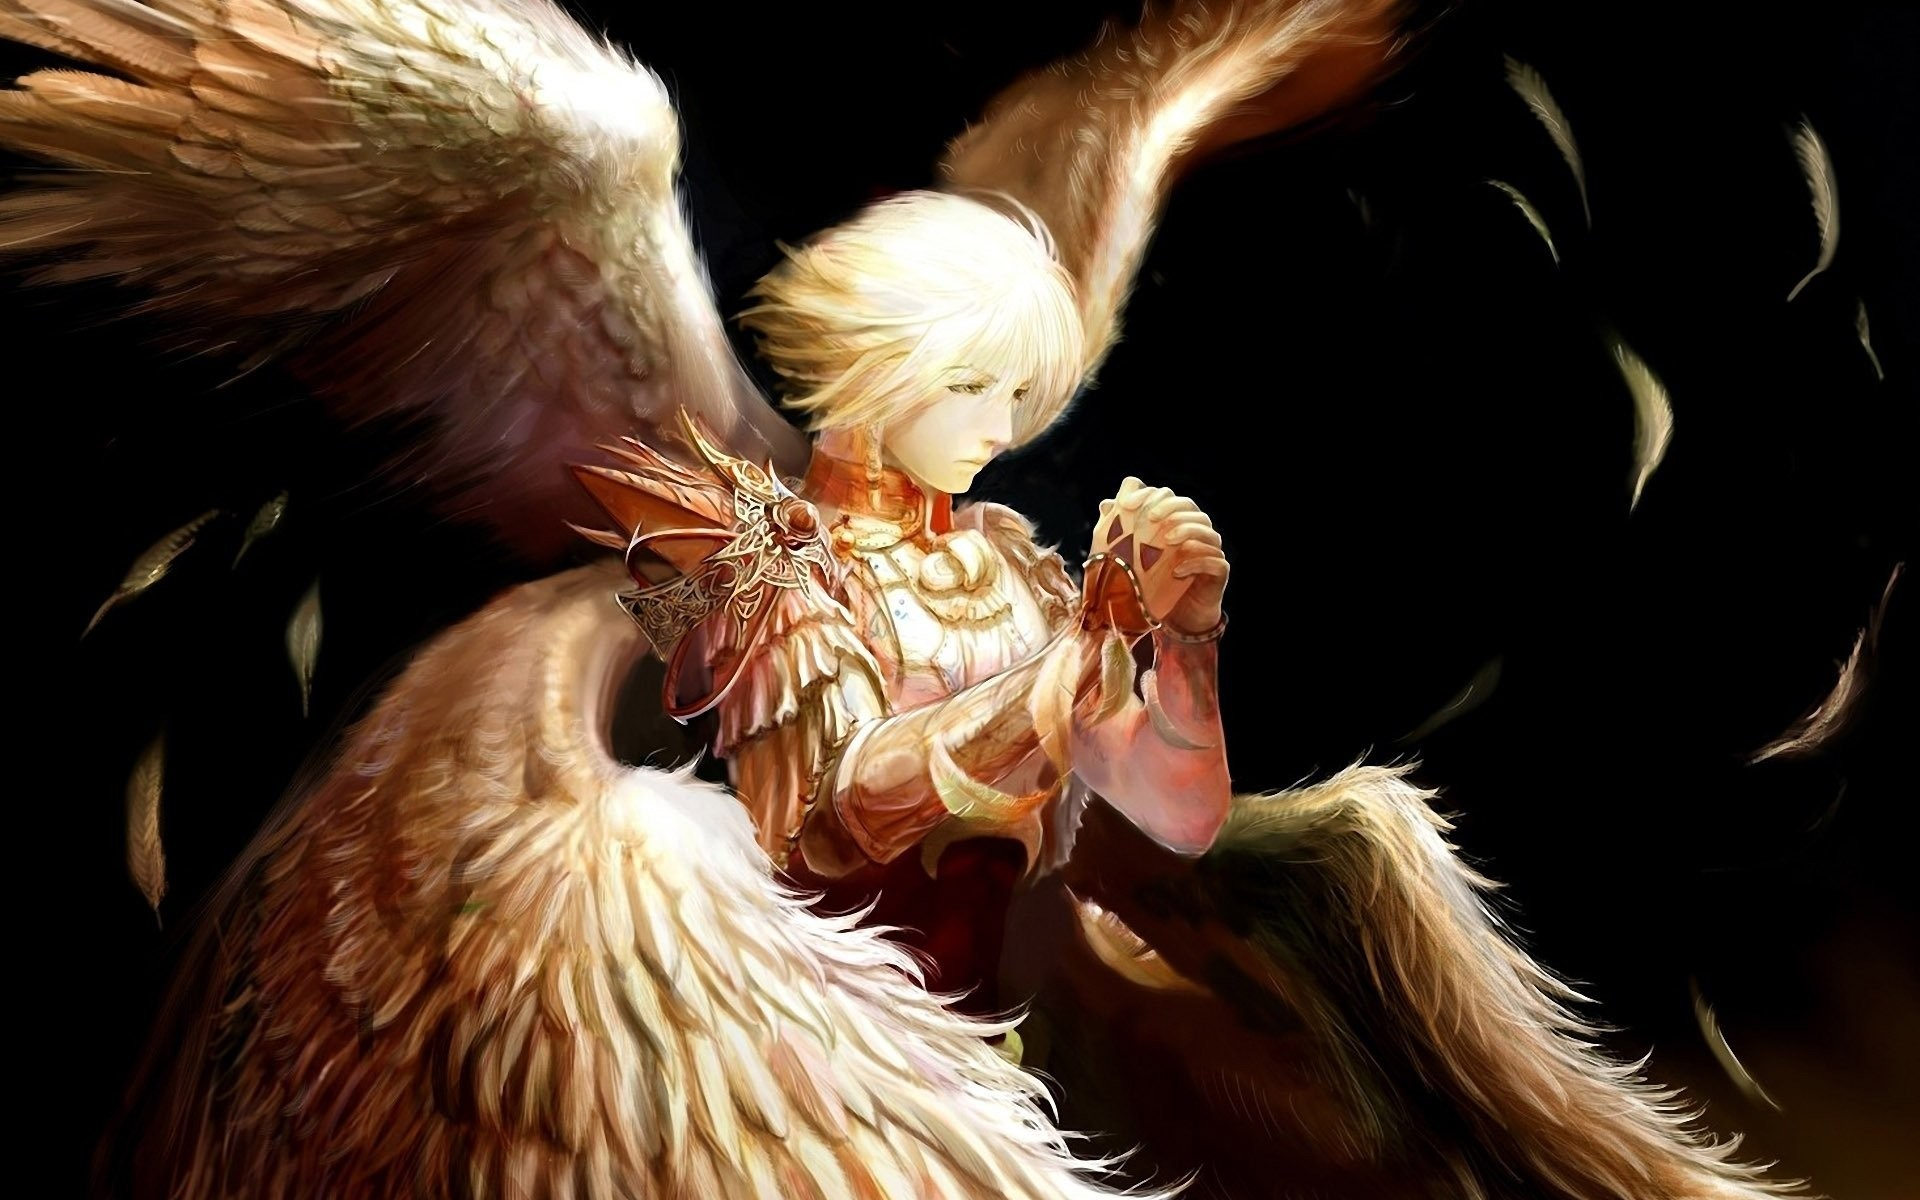 1920x1200 Angel wings feathers warrior male wallpaper |  | 521187 |  WallpaperUP